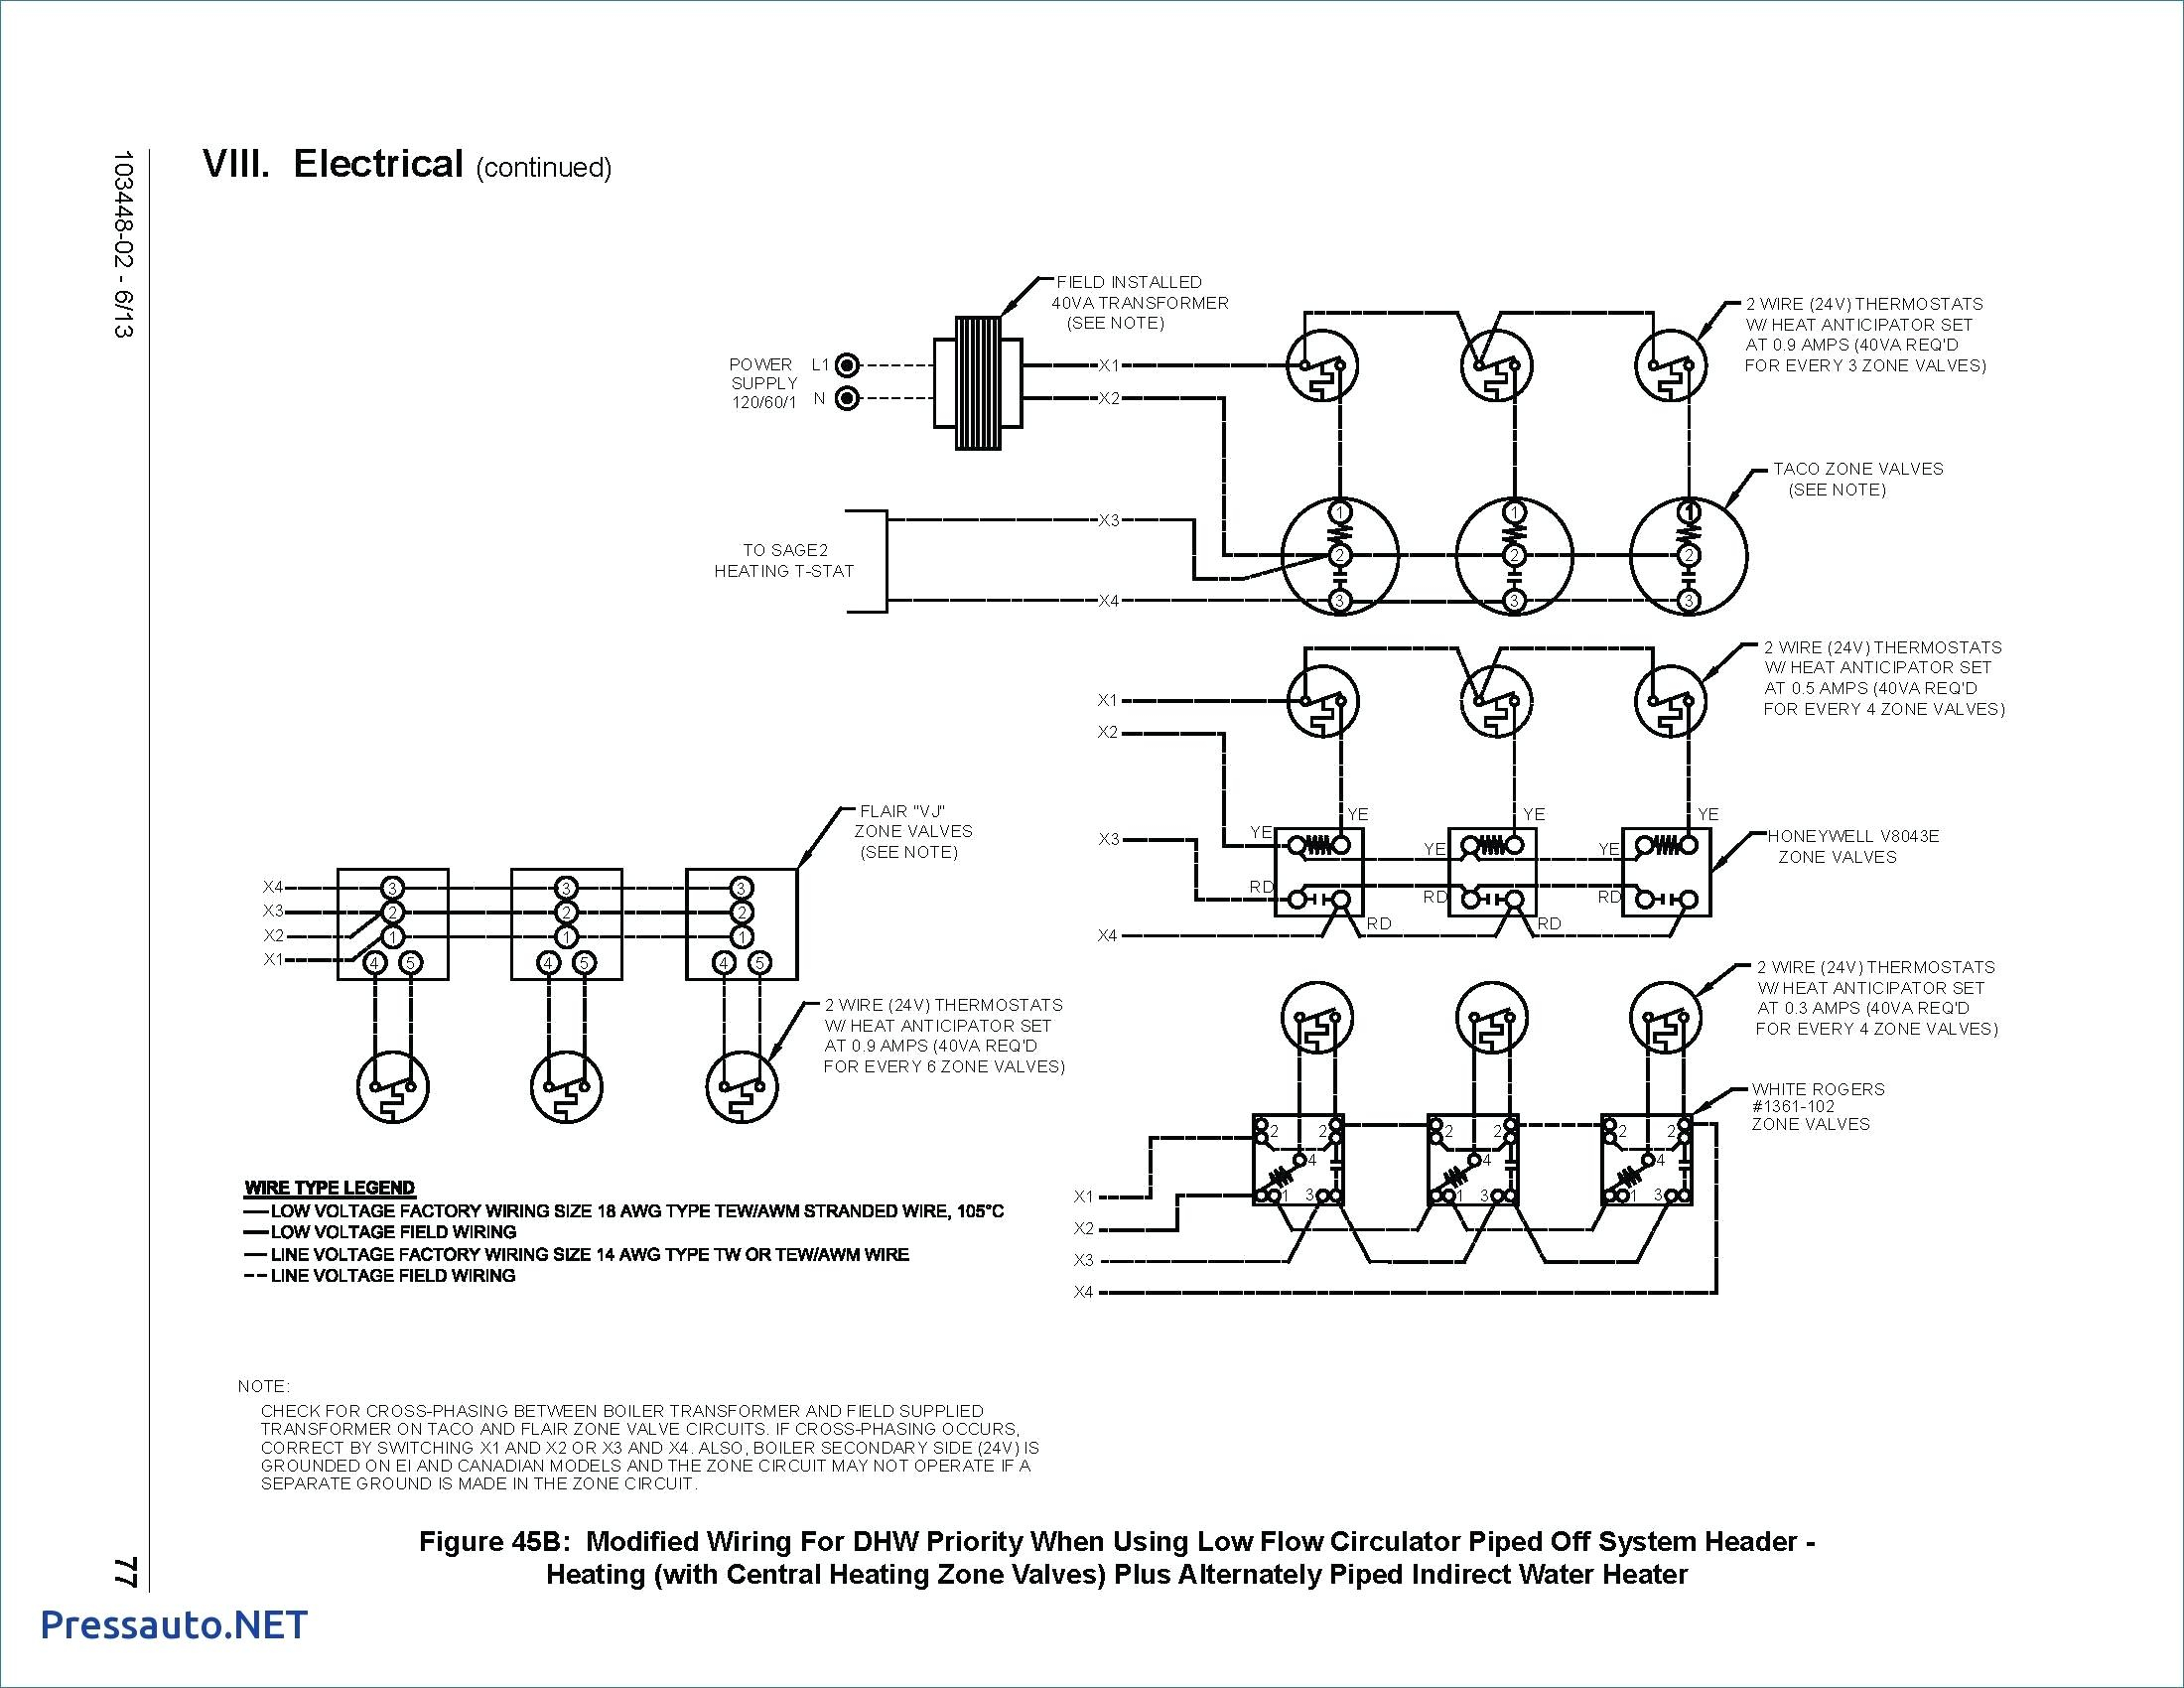 Taco Circulator Pump Wiring Diagram - Taco Circulator Pump Wiring Diagram  Lovely 24v Transformer Wiring Diagram